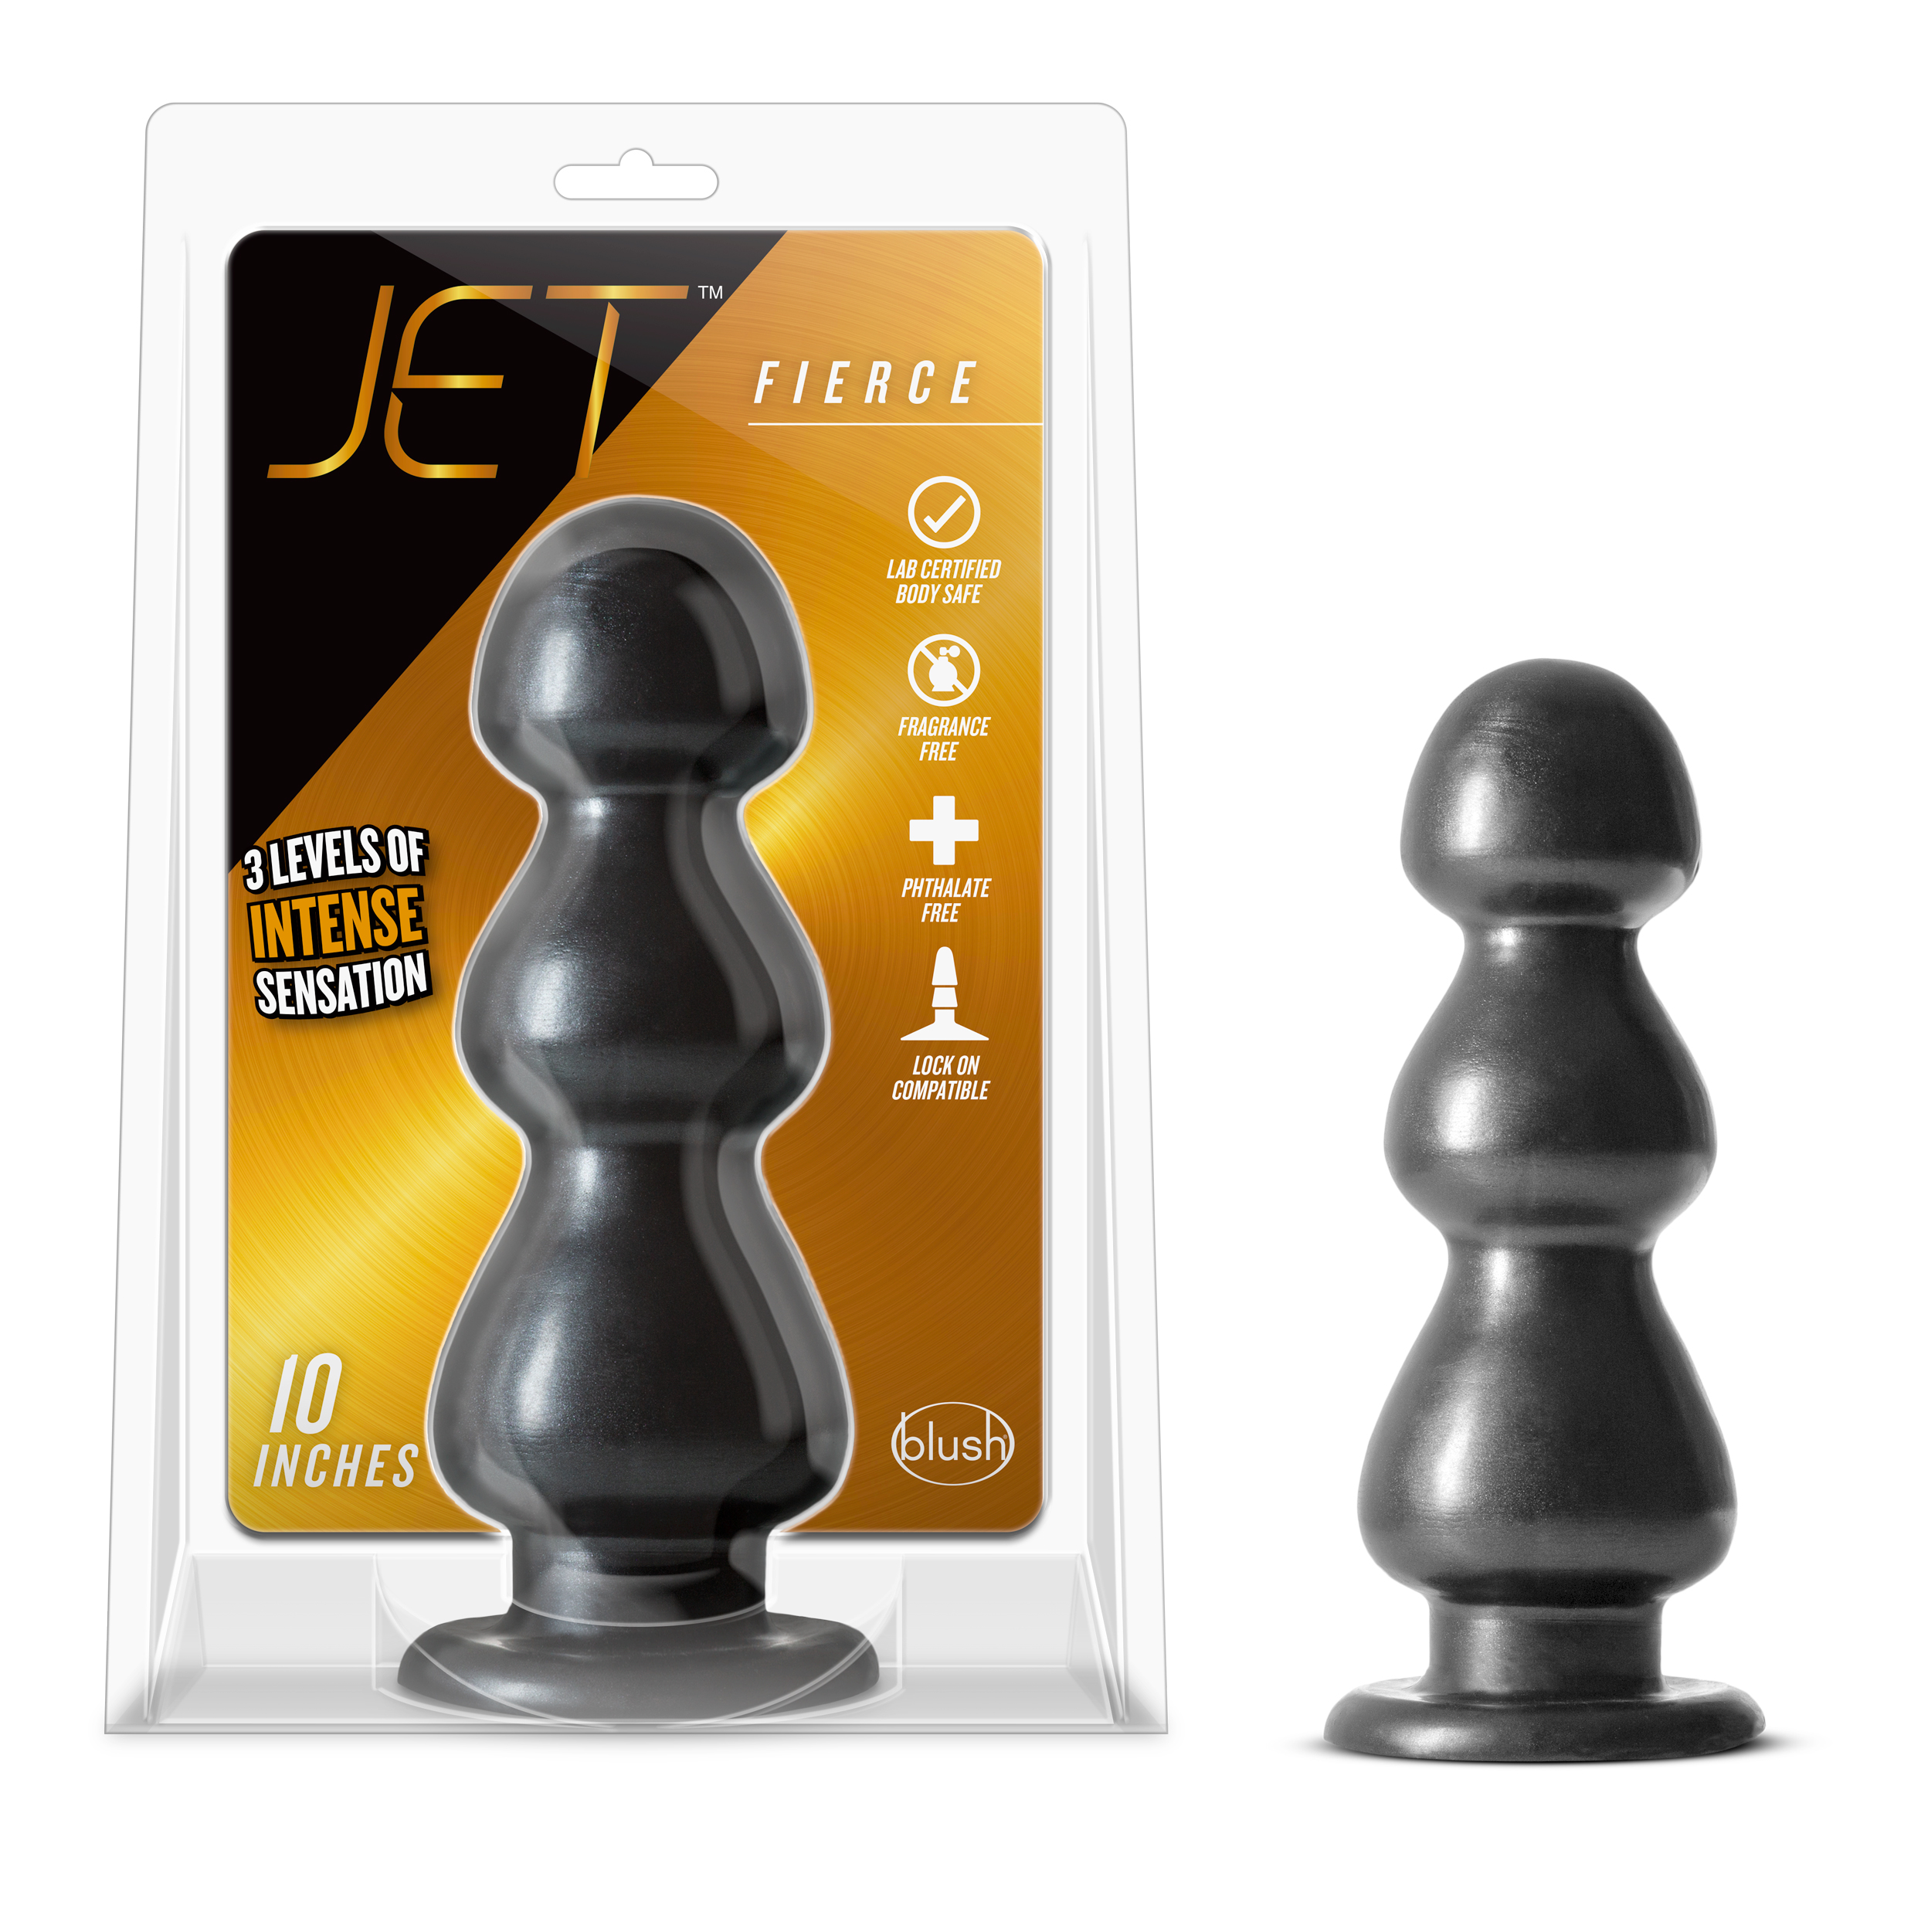 Jet - Fierce - Carbon Metallic Black